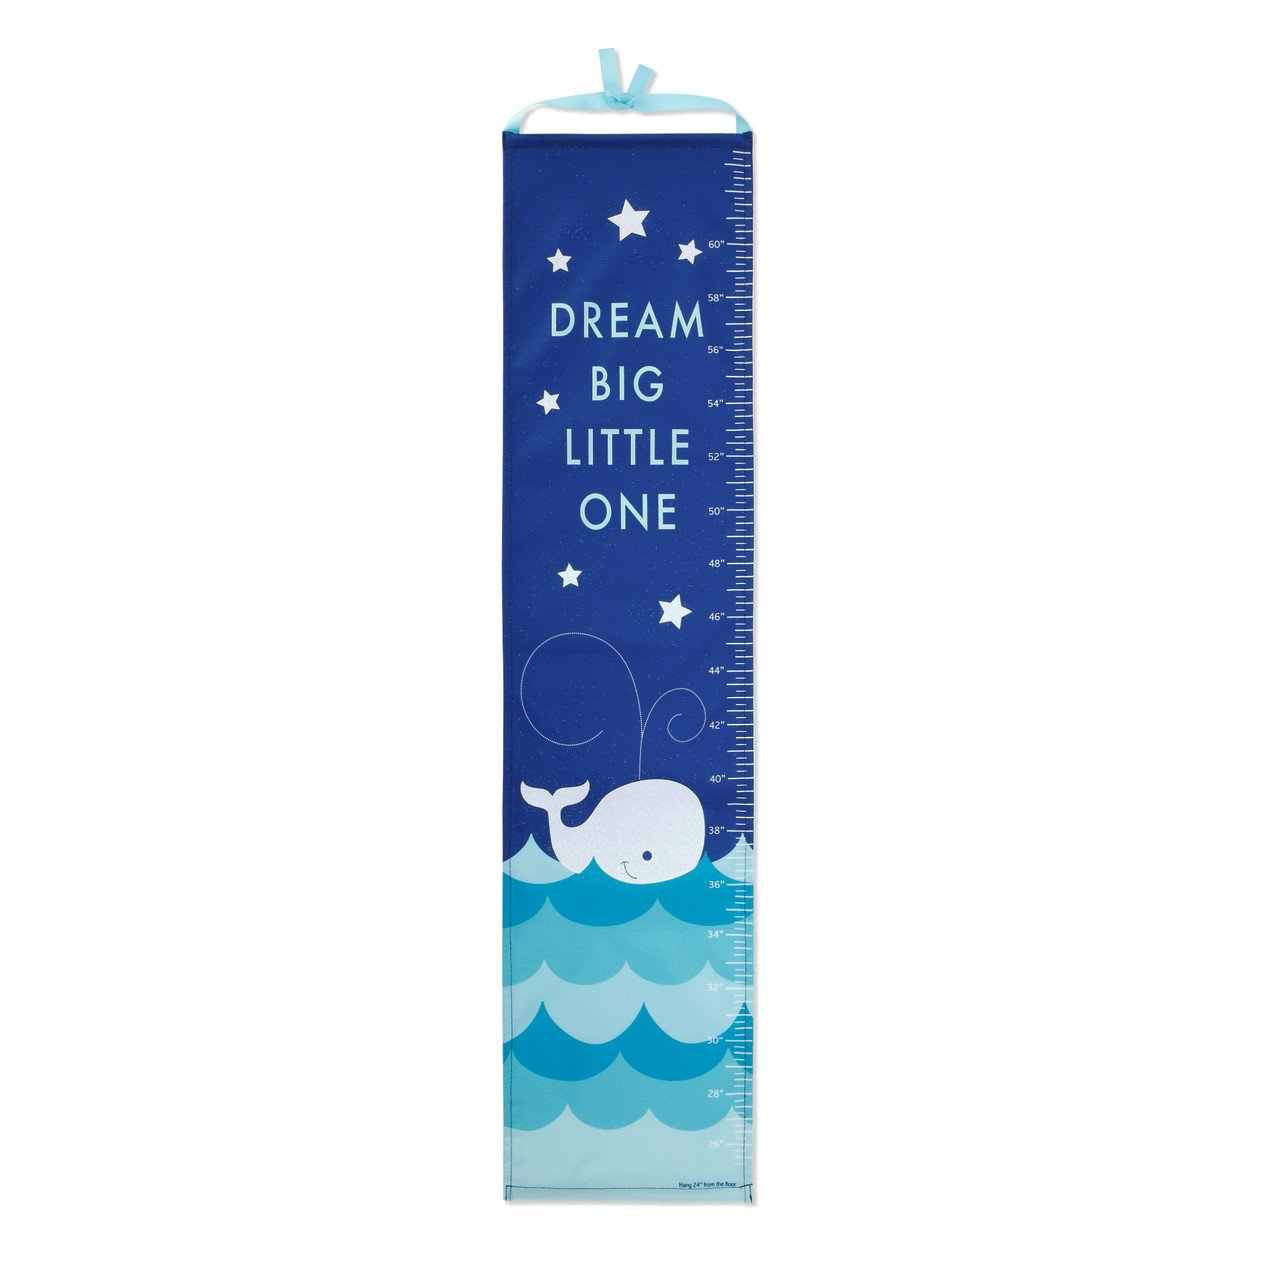 Whale on Ocean Blue Children's Canvas Growth Chart with Stickers by DEMDACO